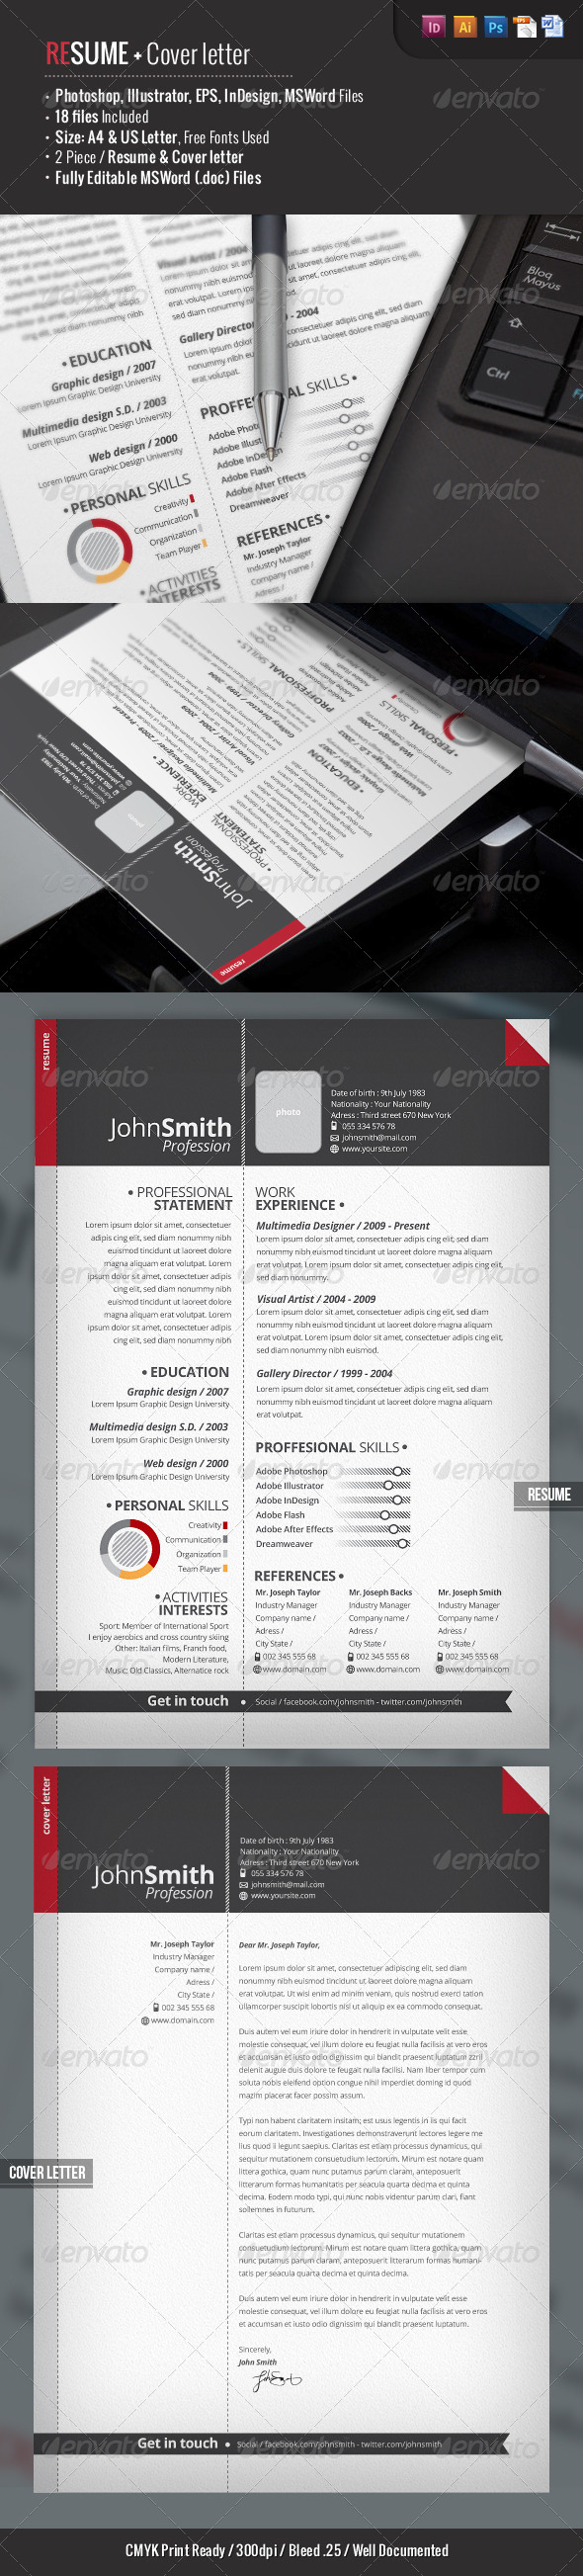 2-Piece Pro Resume + Cover Letter - Resumes Stationery